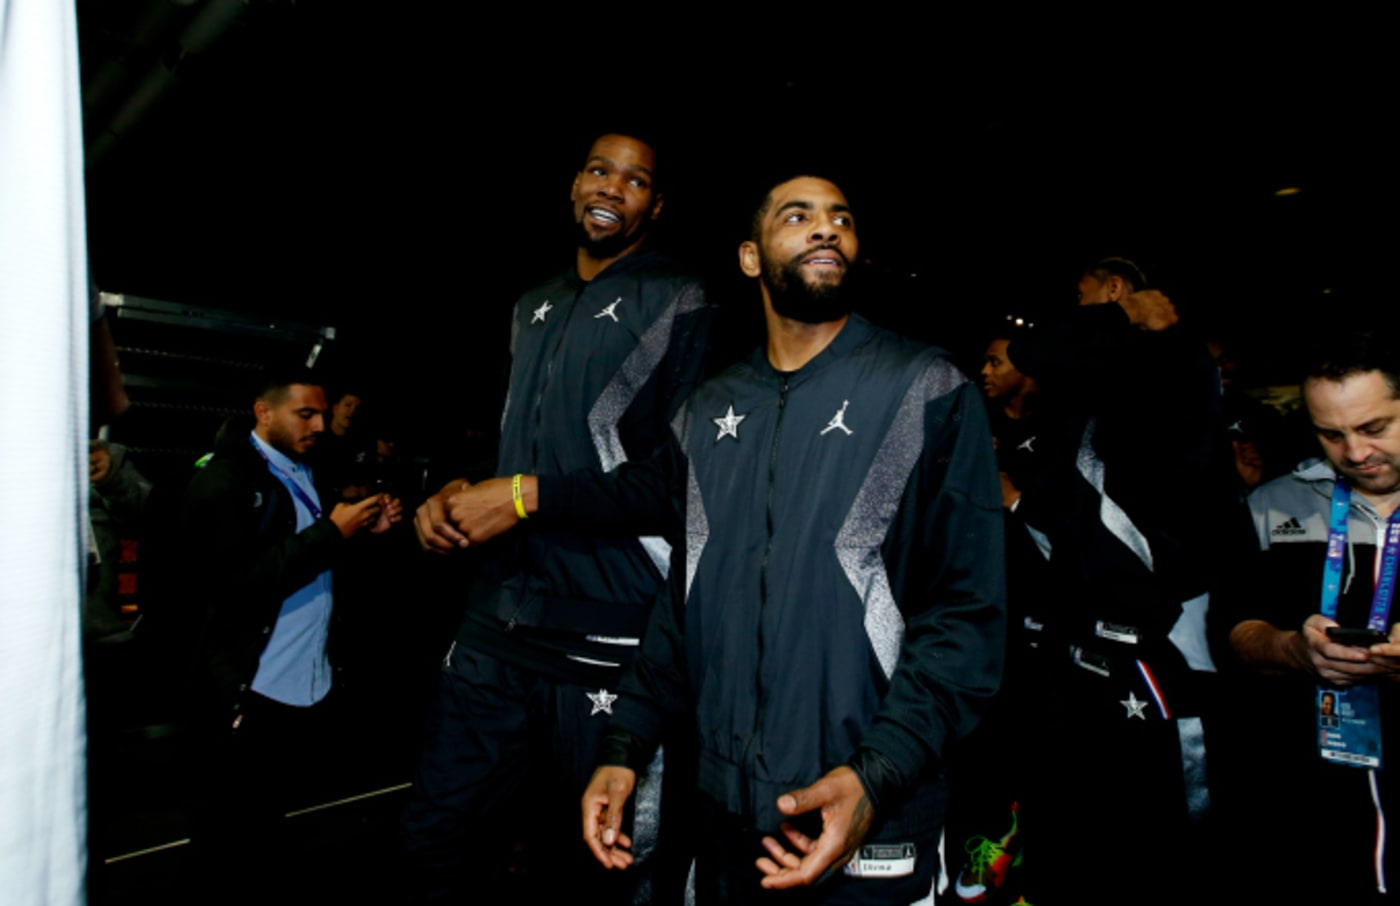 Kevin Durant #35 and Kyrie Irving #11 of Team LeBron